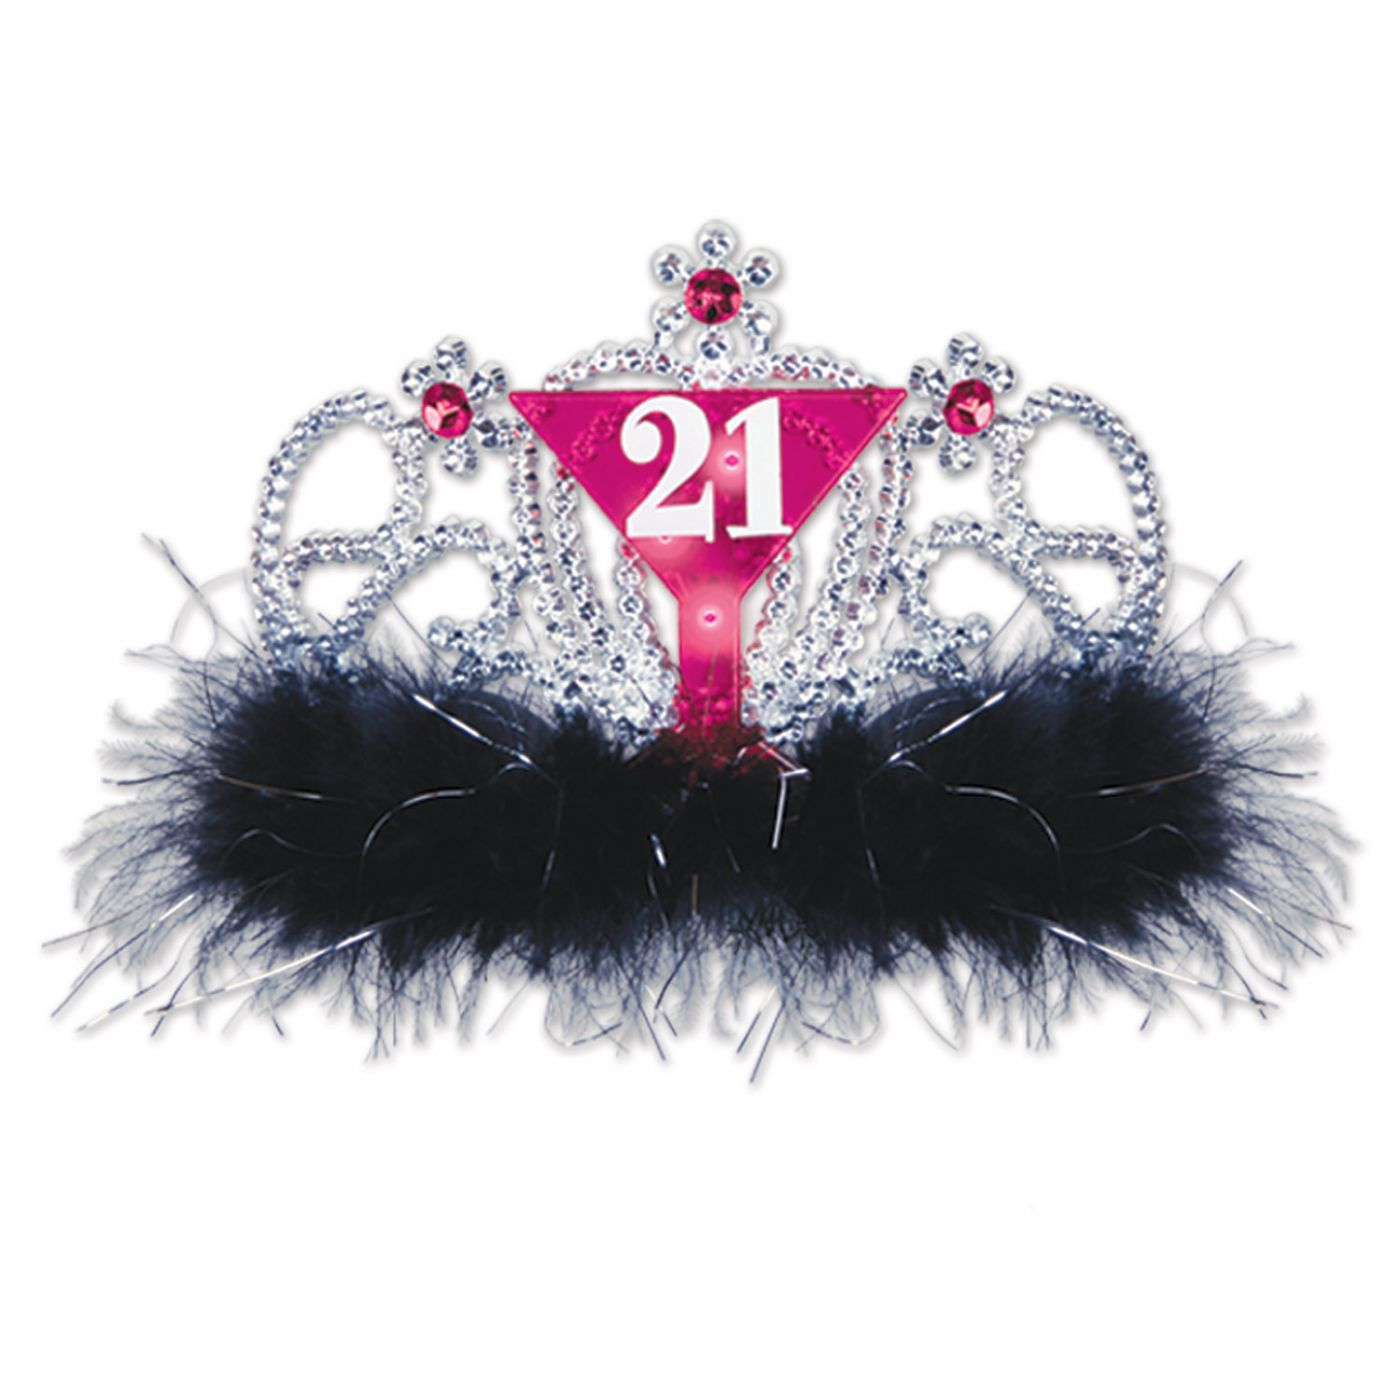 Plastic Light-Up  21  Tiara (6) image